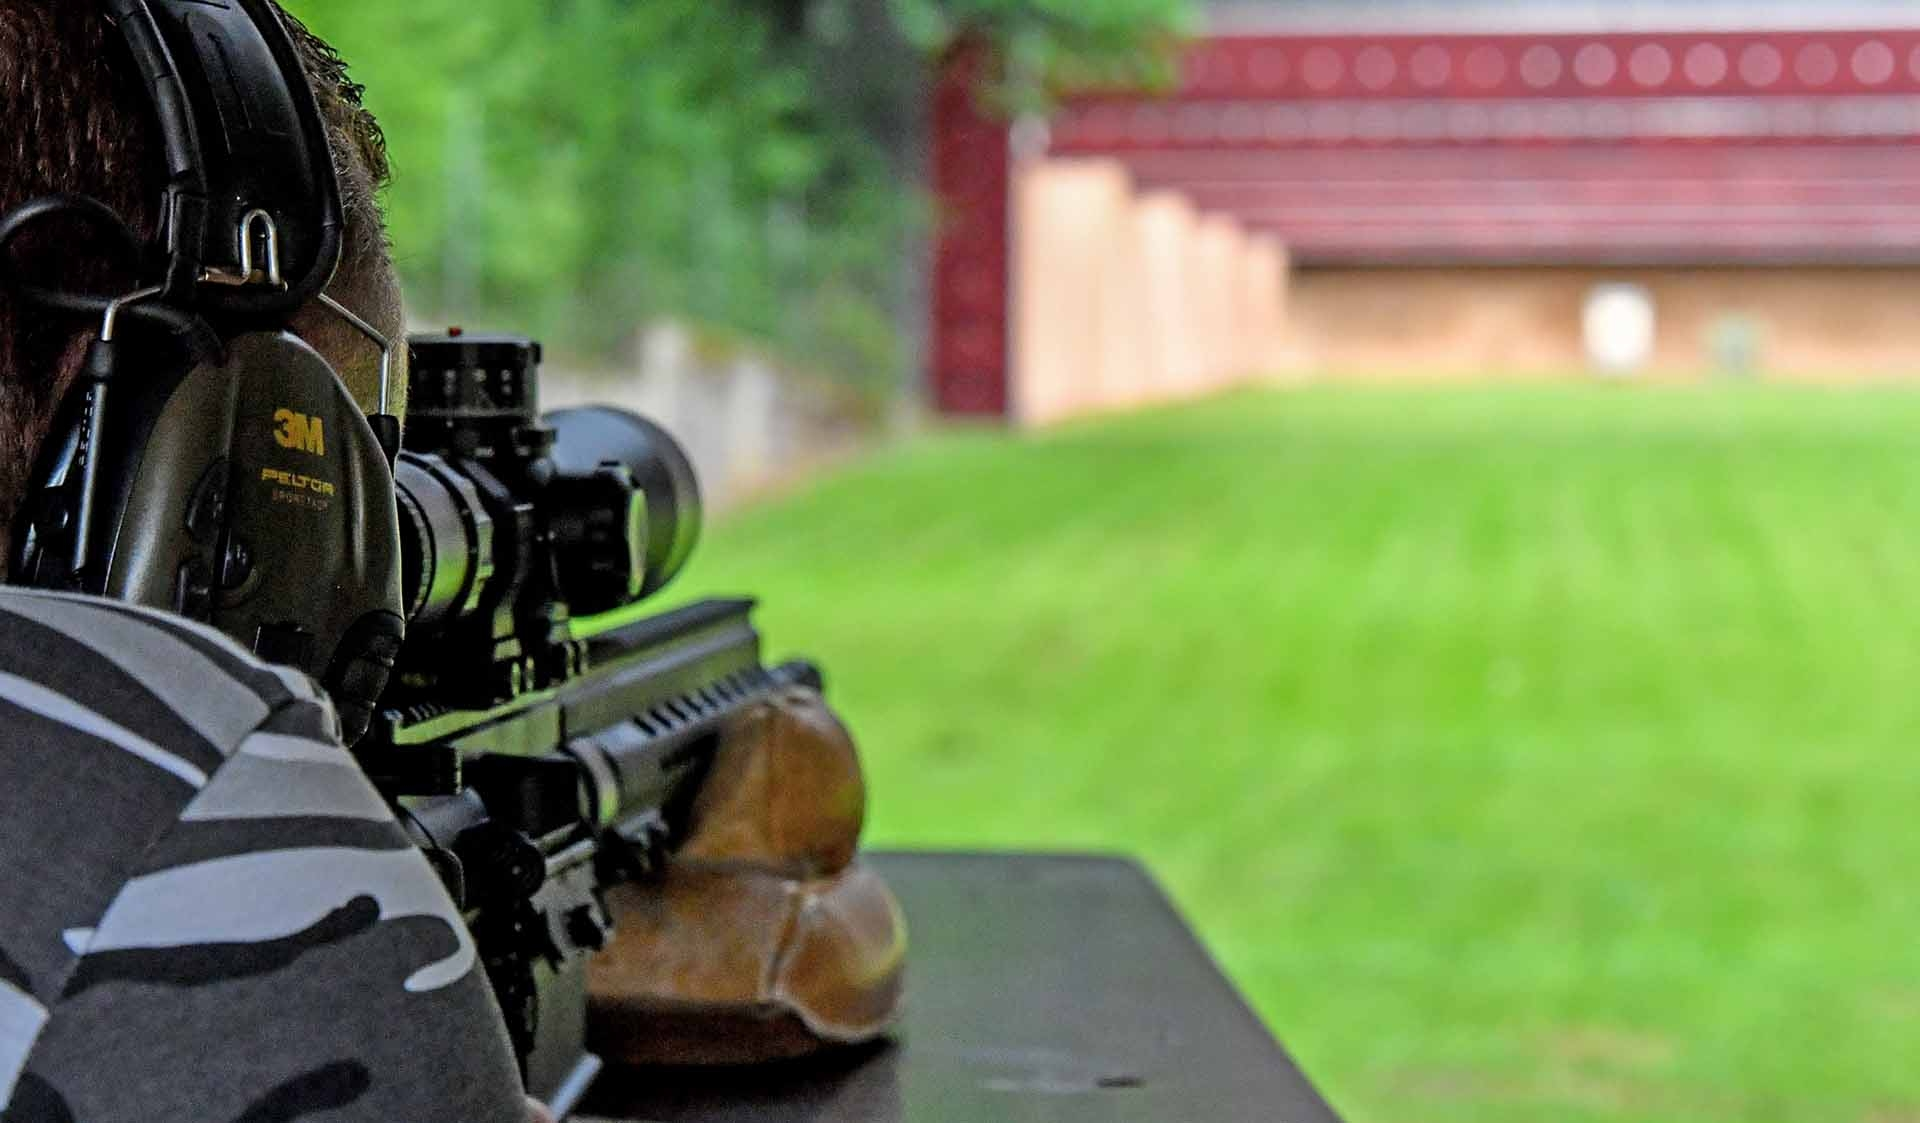 Kahles K525i tactical riflescope: test at the 300m range